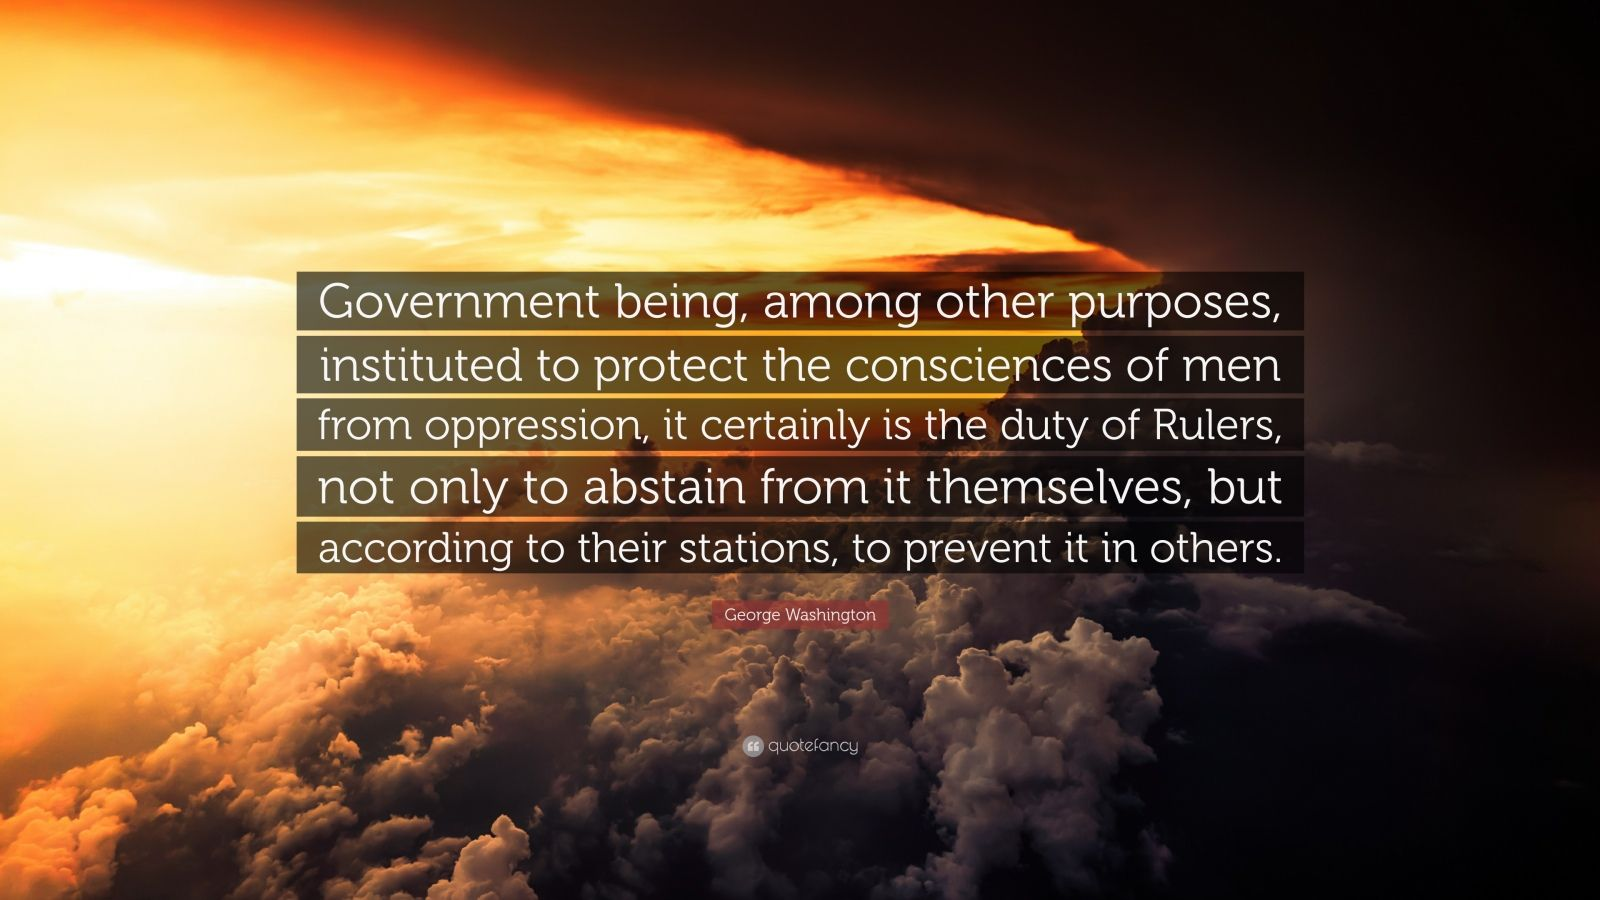 """George Washington Quote: """"Government being, among other purposes, instituted to protect the consciences of men from oppression, it certainly is the duty of Rulers, not only to abstain from it themselves, but according to their stations, to prevent it in others."""""""